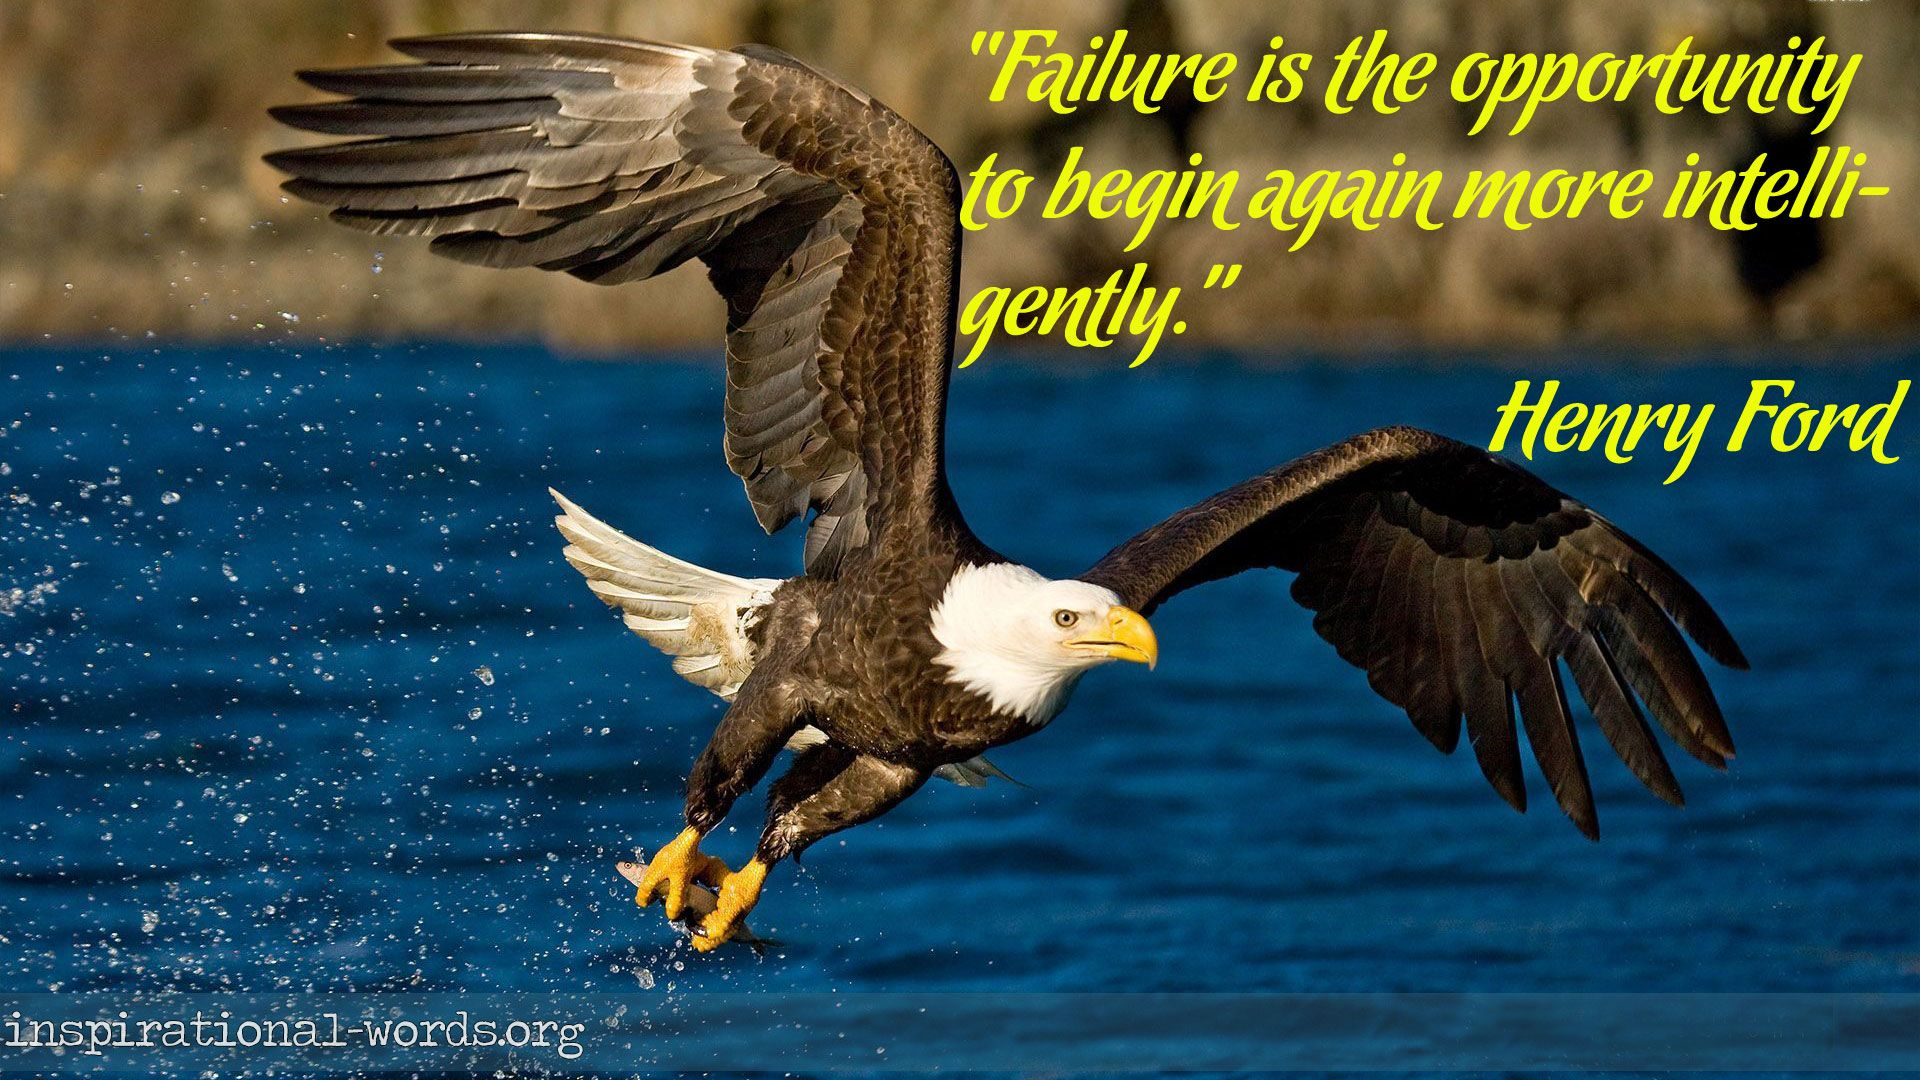 Inspirational Wallpaper Quote By Henry Ford Failure Is The Opportunity To Begin Again More Intelligently Eagle Pictures Eagle Wallpaper Bald Eagle